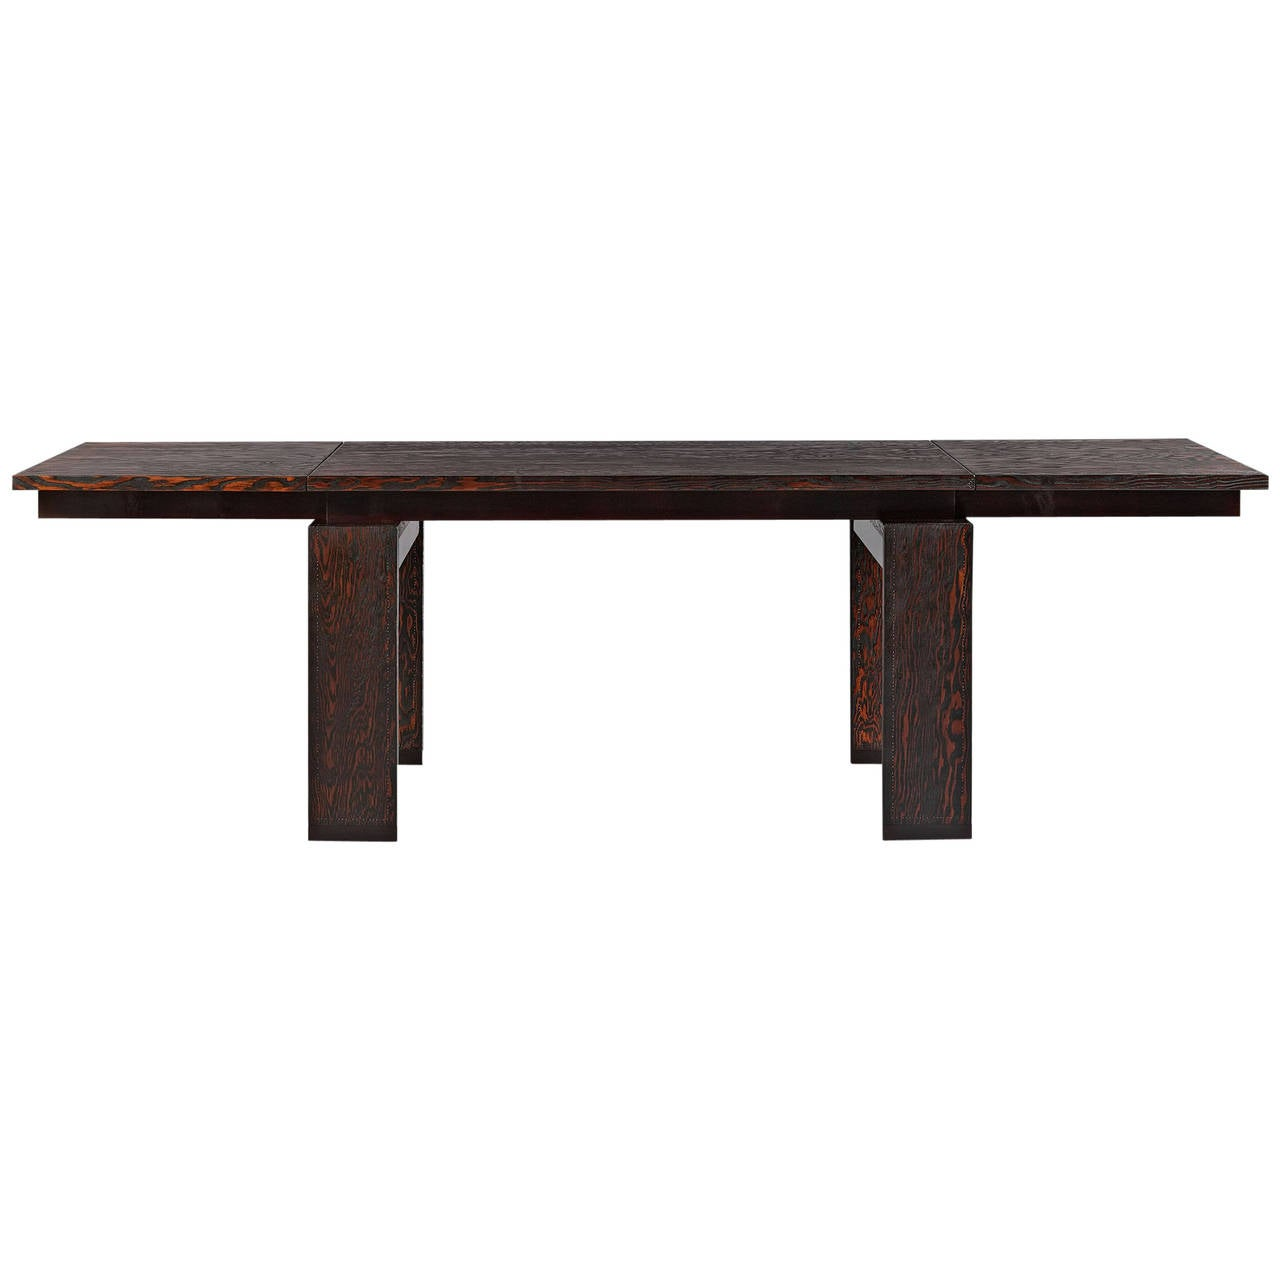 Oregon Pine Dining Room Table For Sale tables oregon  : 2745642l from hotrodhal.com size 1280 x 1280 jpeg 45kB